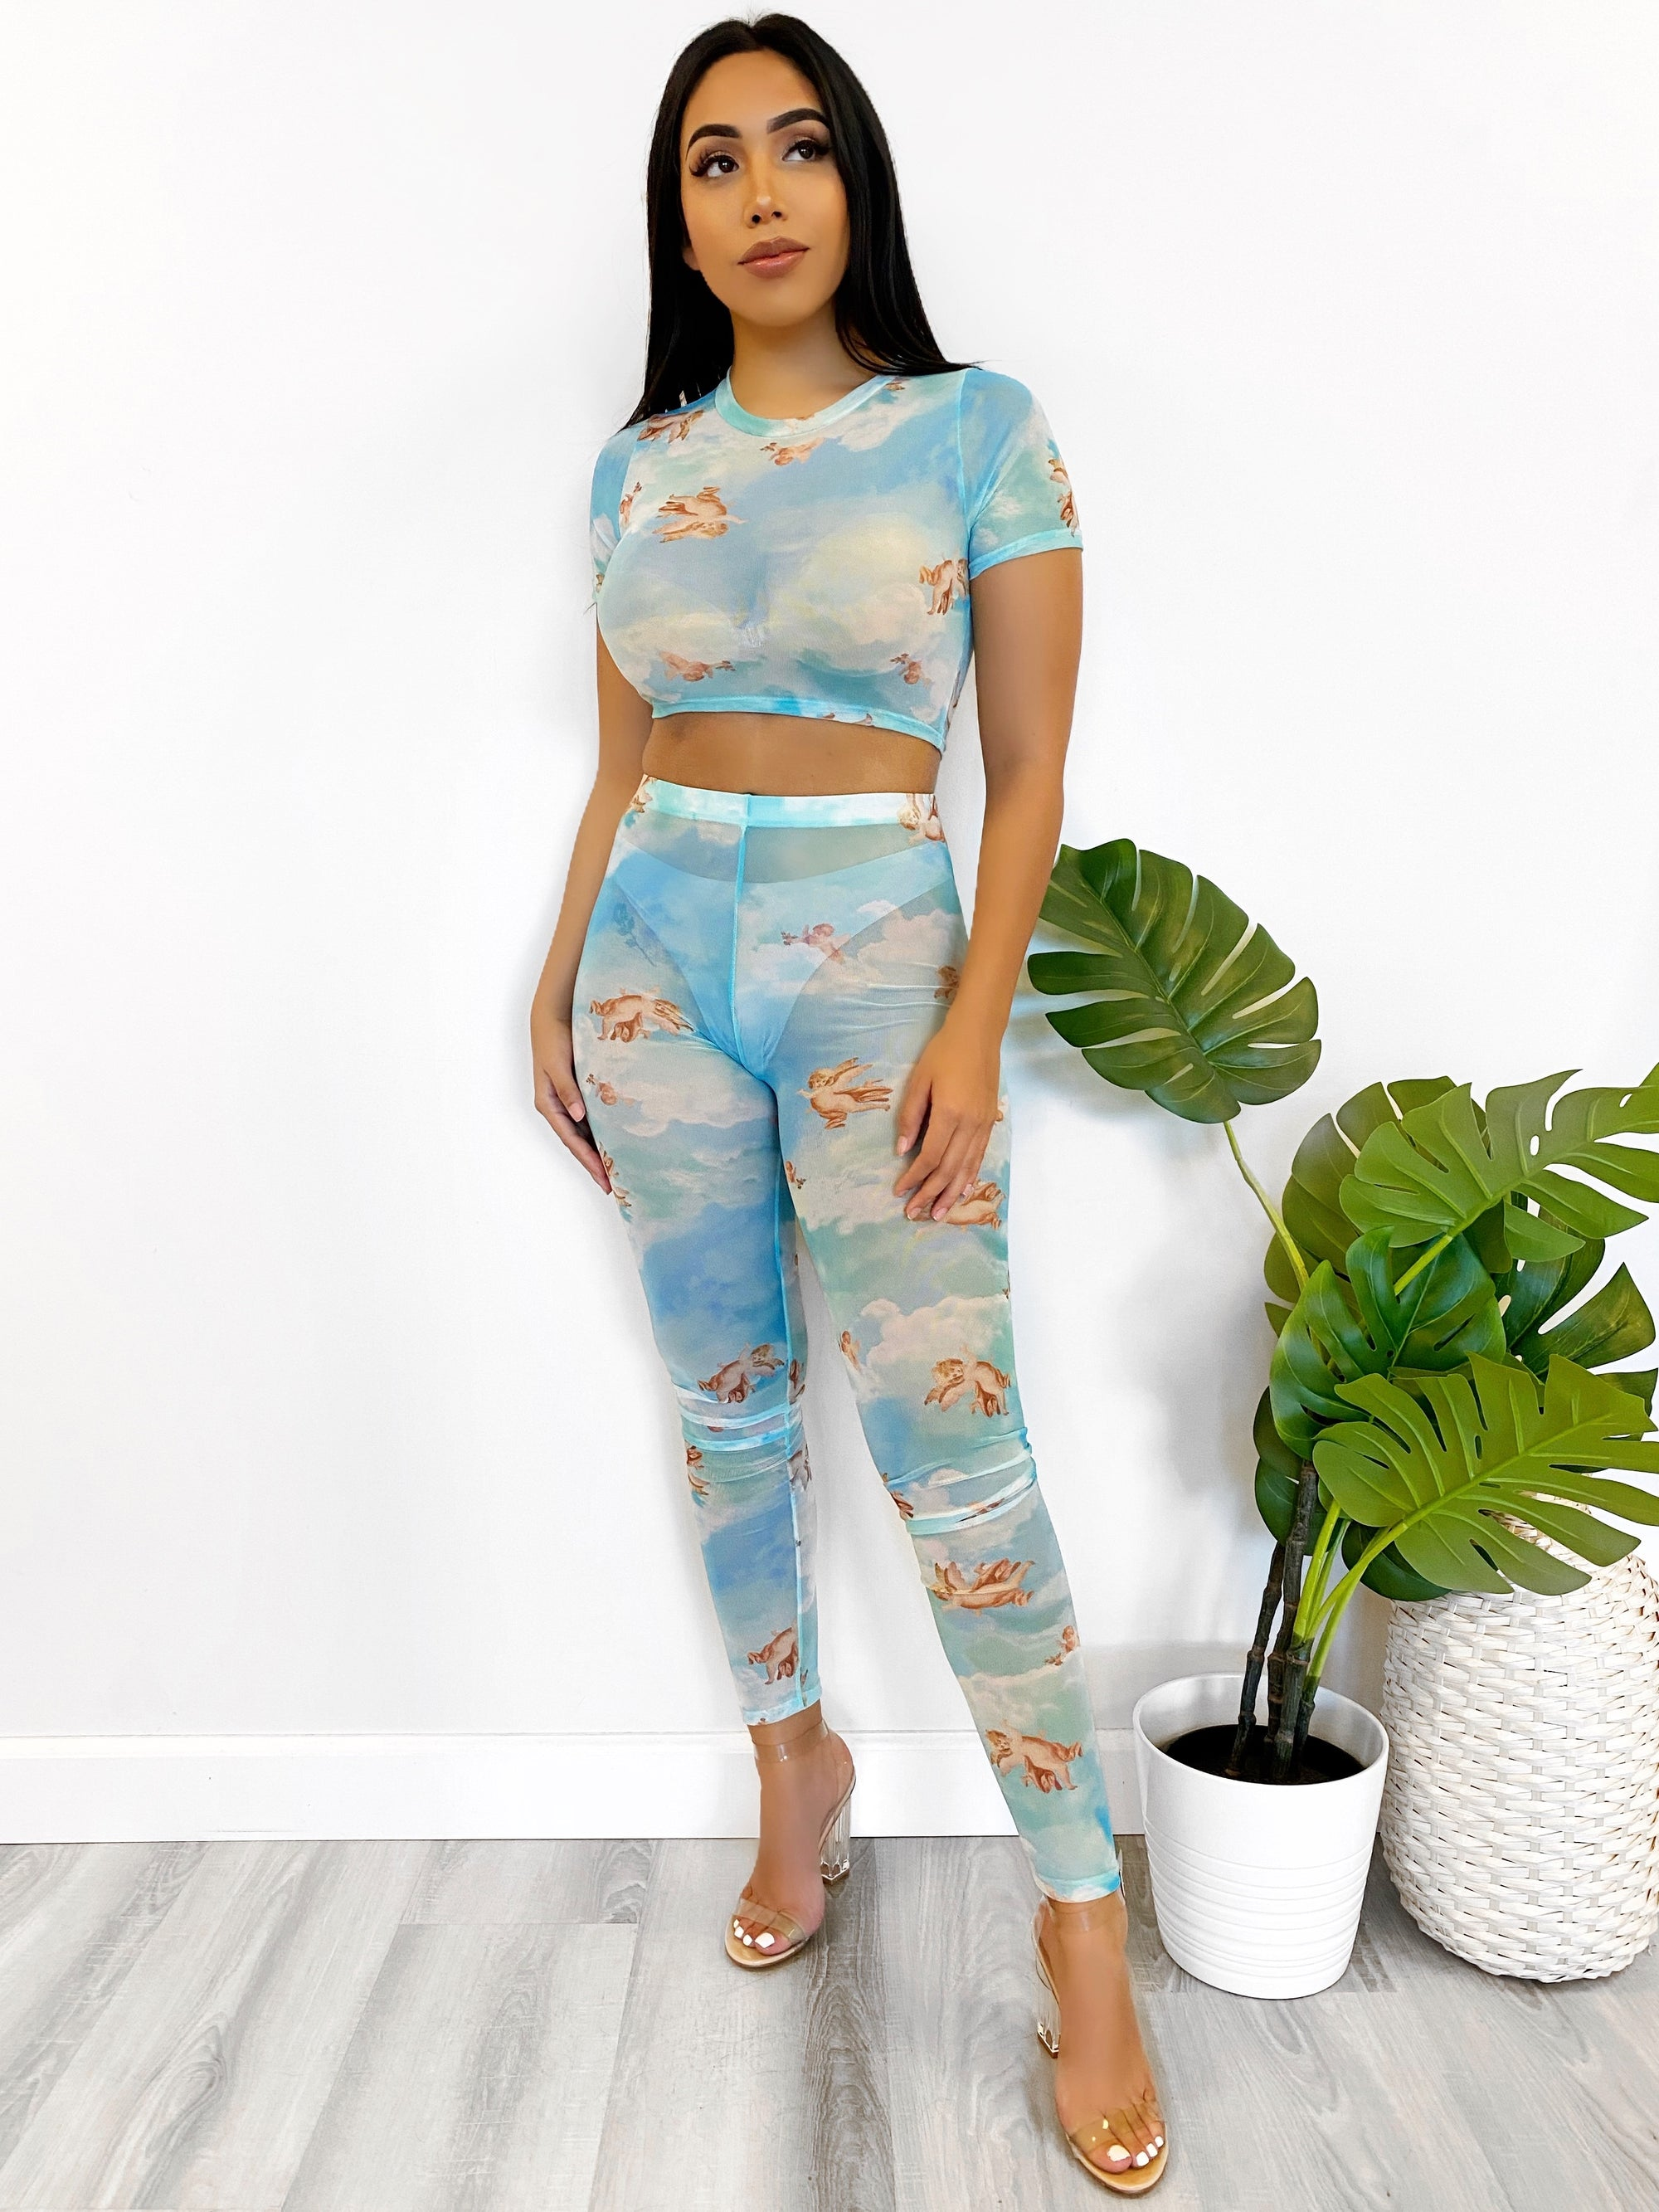 blue angel print 2 piece, mesh leggings, mesh crop top, see through